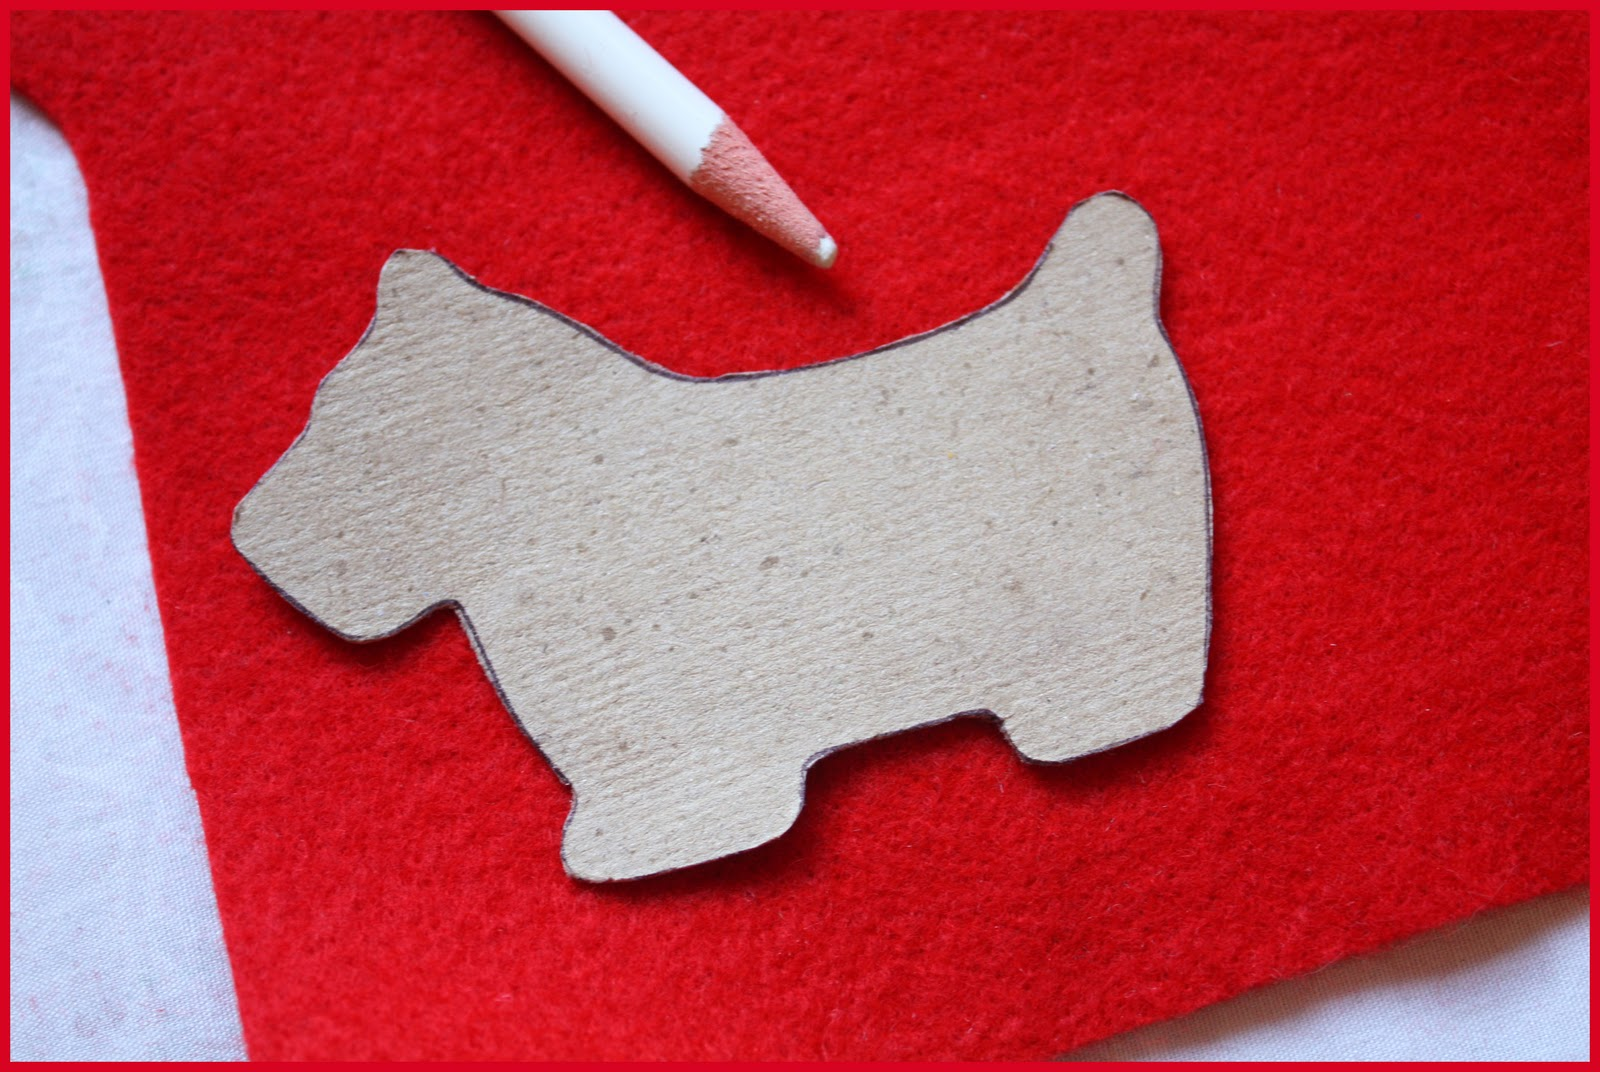 Felt Dog Patterns http://everyday-cookies.blogspot.com/2011/01/scottie-dog-cookie-cutter-project-3.html